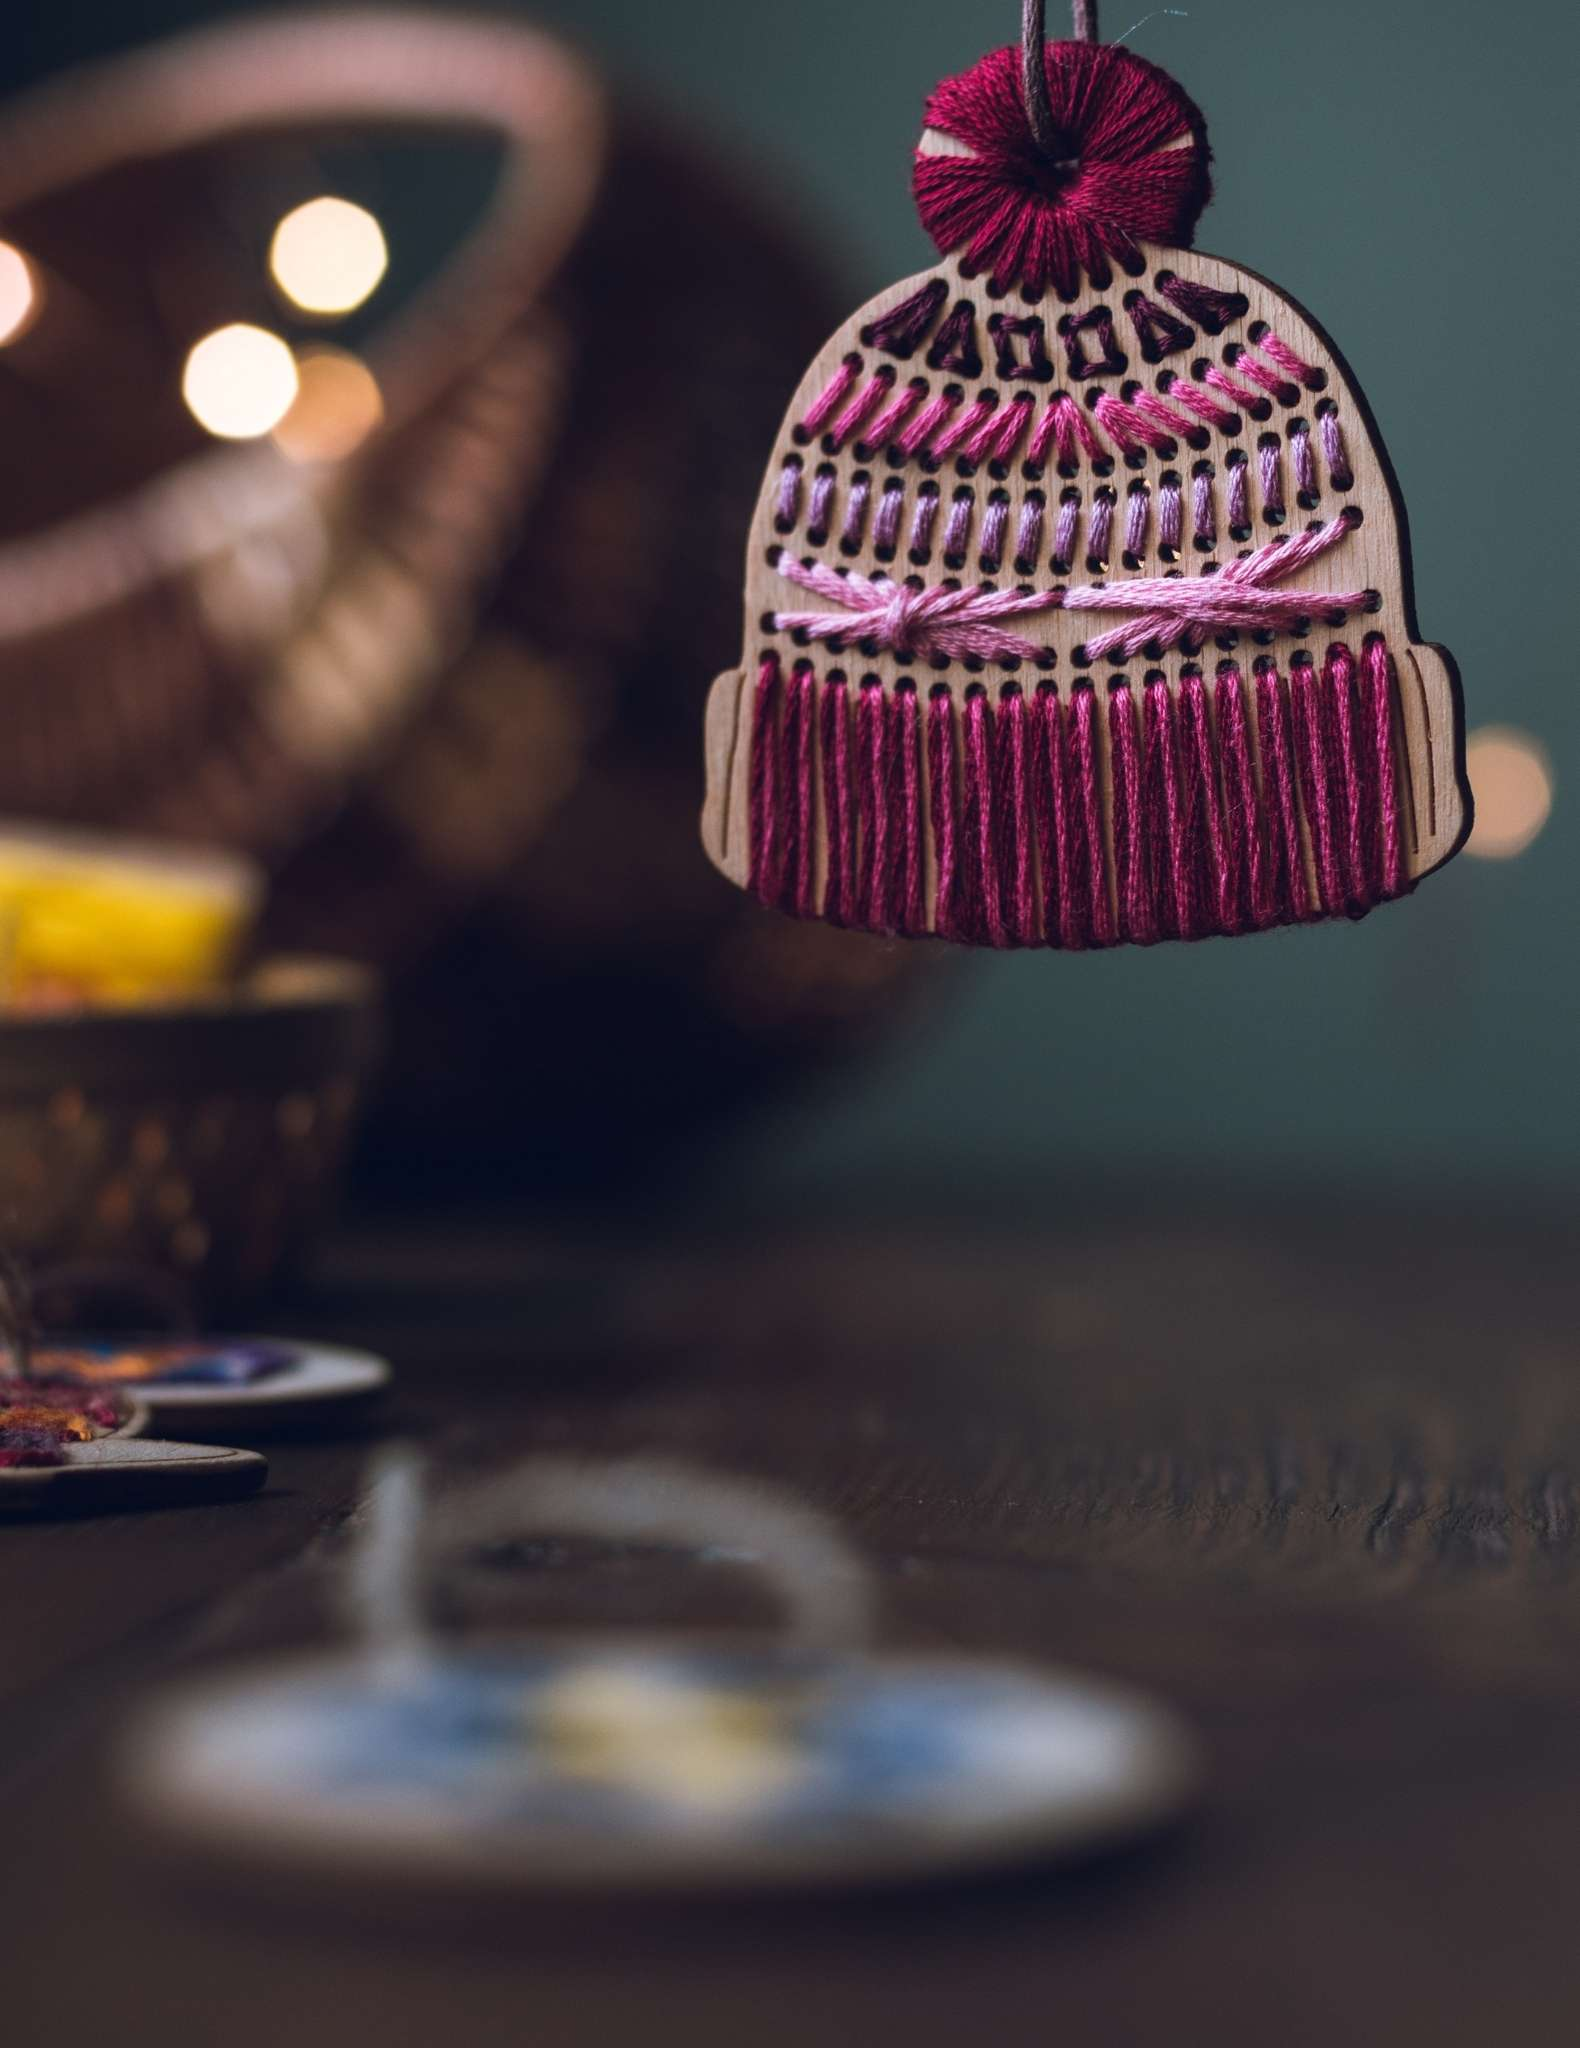 A close up of a wooden ornament shaped like a knitted hat with pom pom, stitched with pink threads.